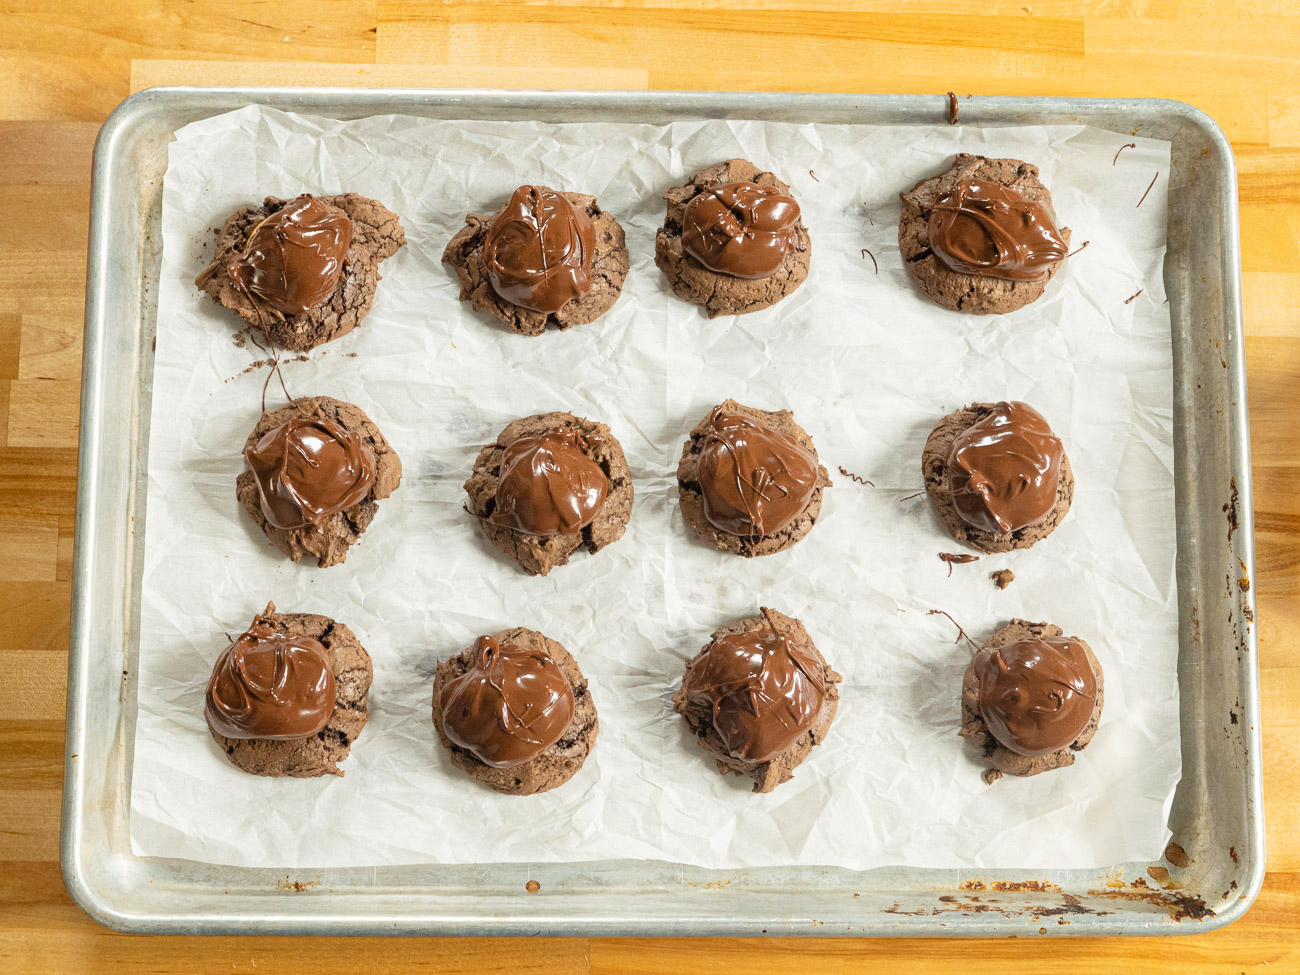 Melt chocolate in a microwavable bowl in 30-second increments. Spoon about 1/2 a tablespoon of melted chocolate on top of each cookie so it covers the peanut butter ball. Let the chocolate set. Store in an airtight container.